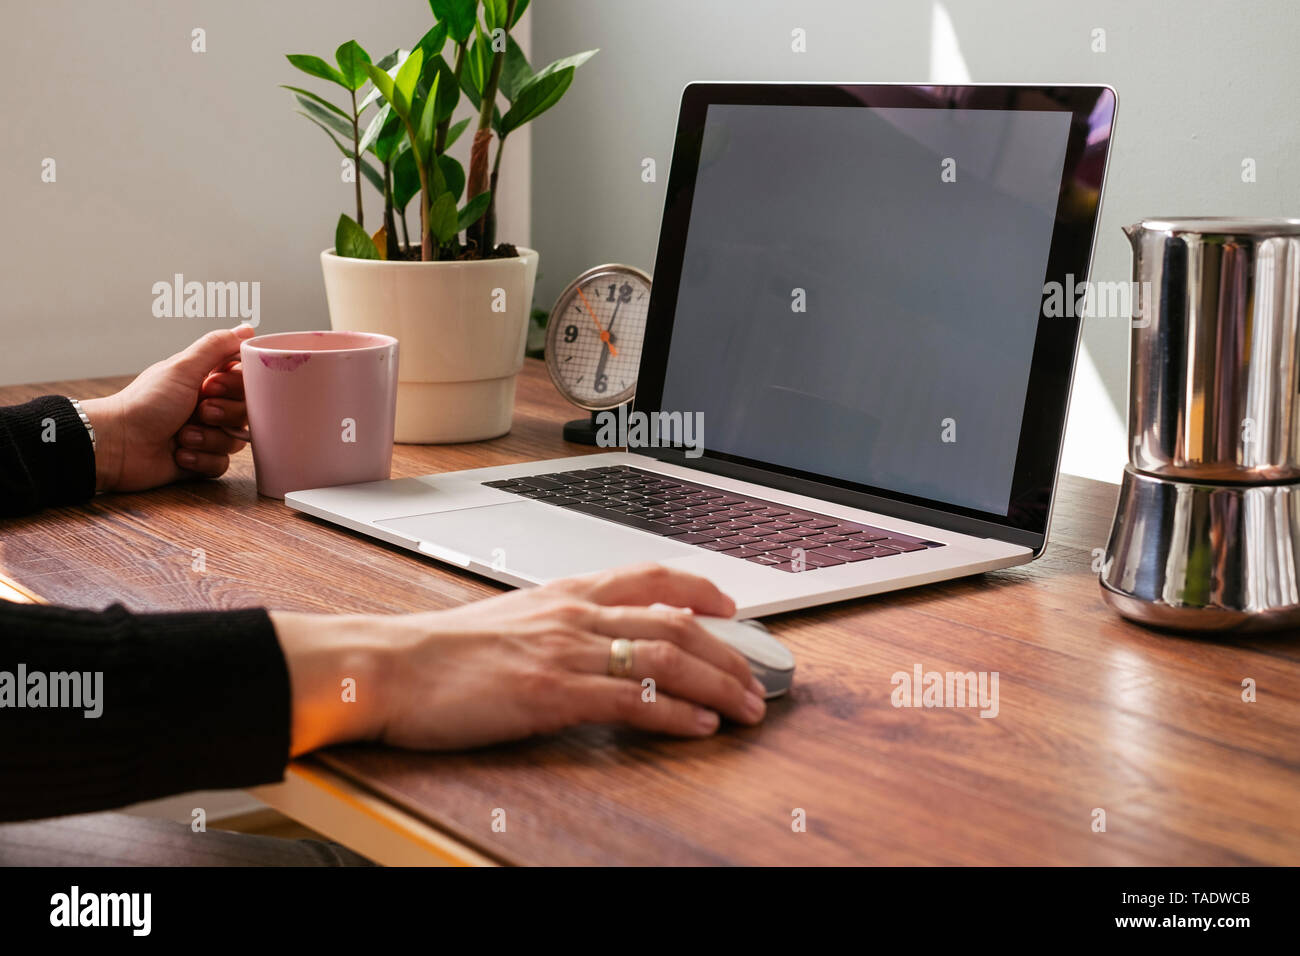 Woman working on laptop at home office, partial view - Stock Image